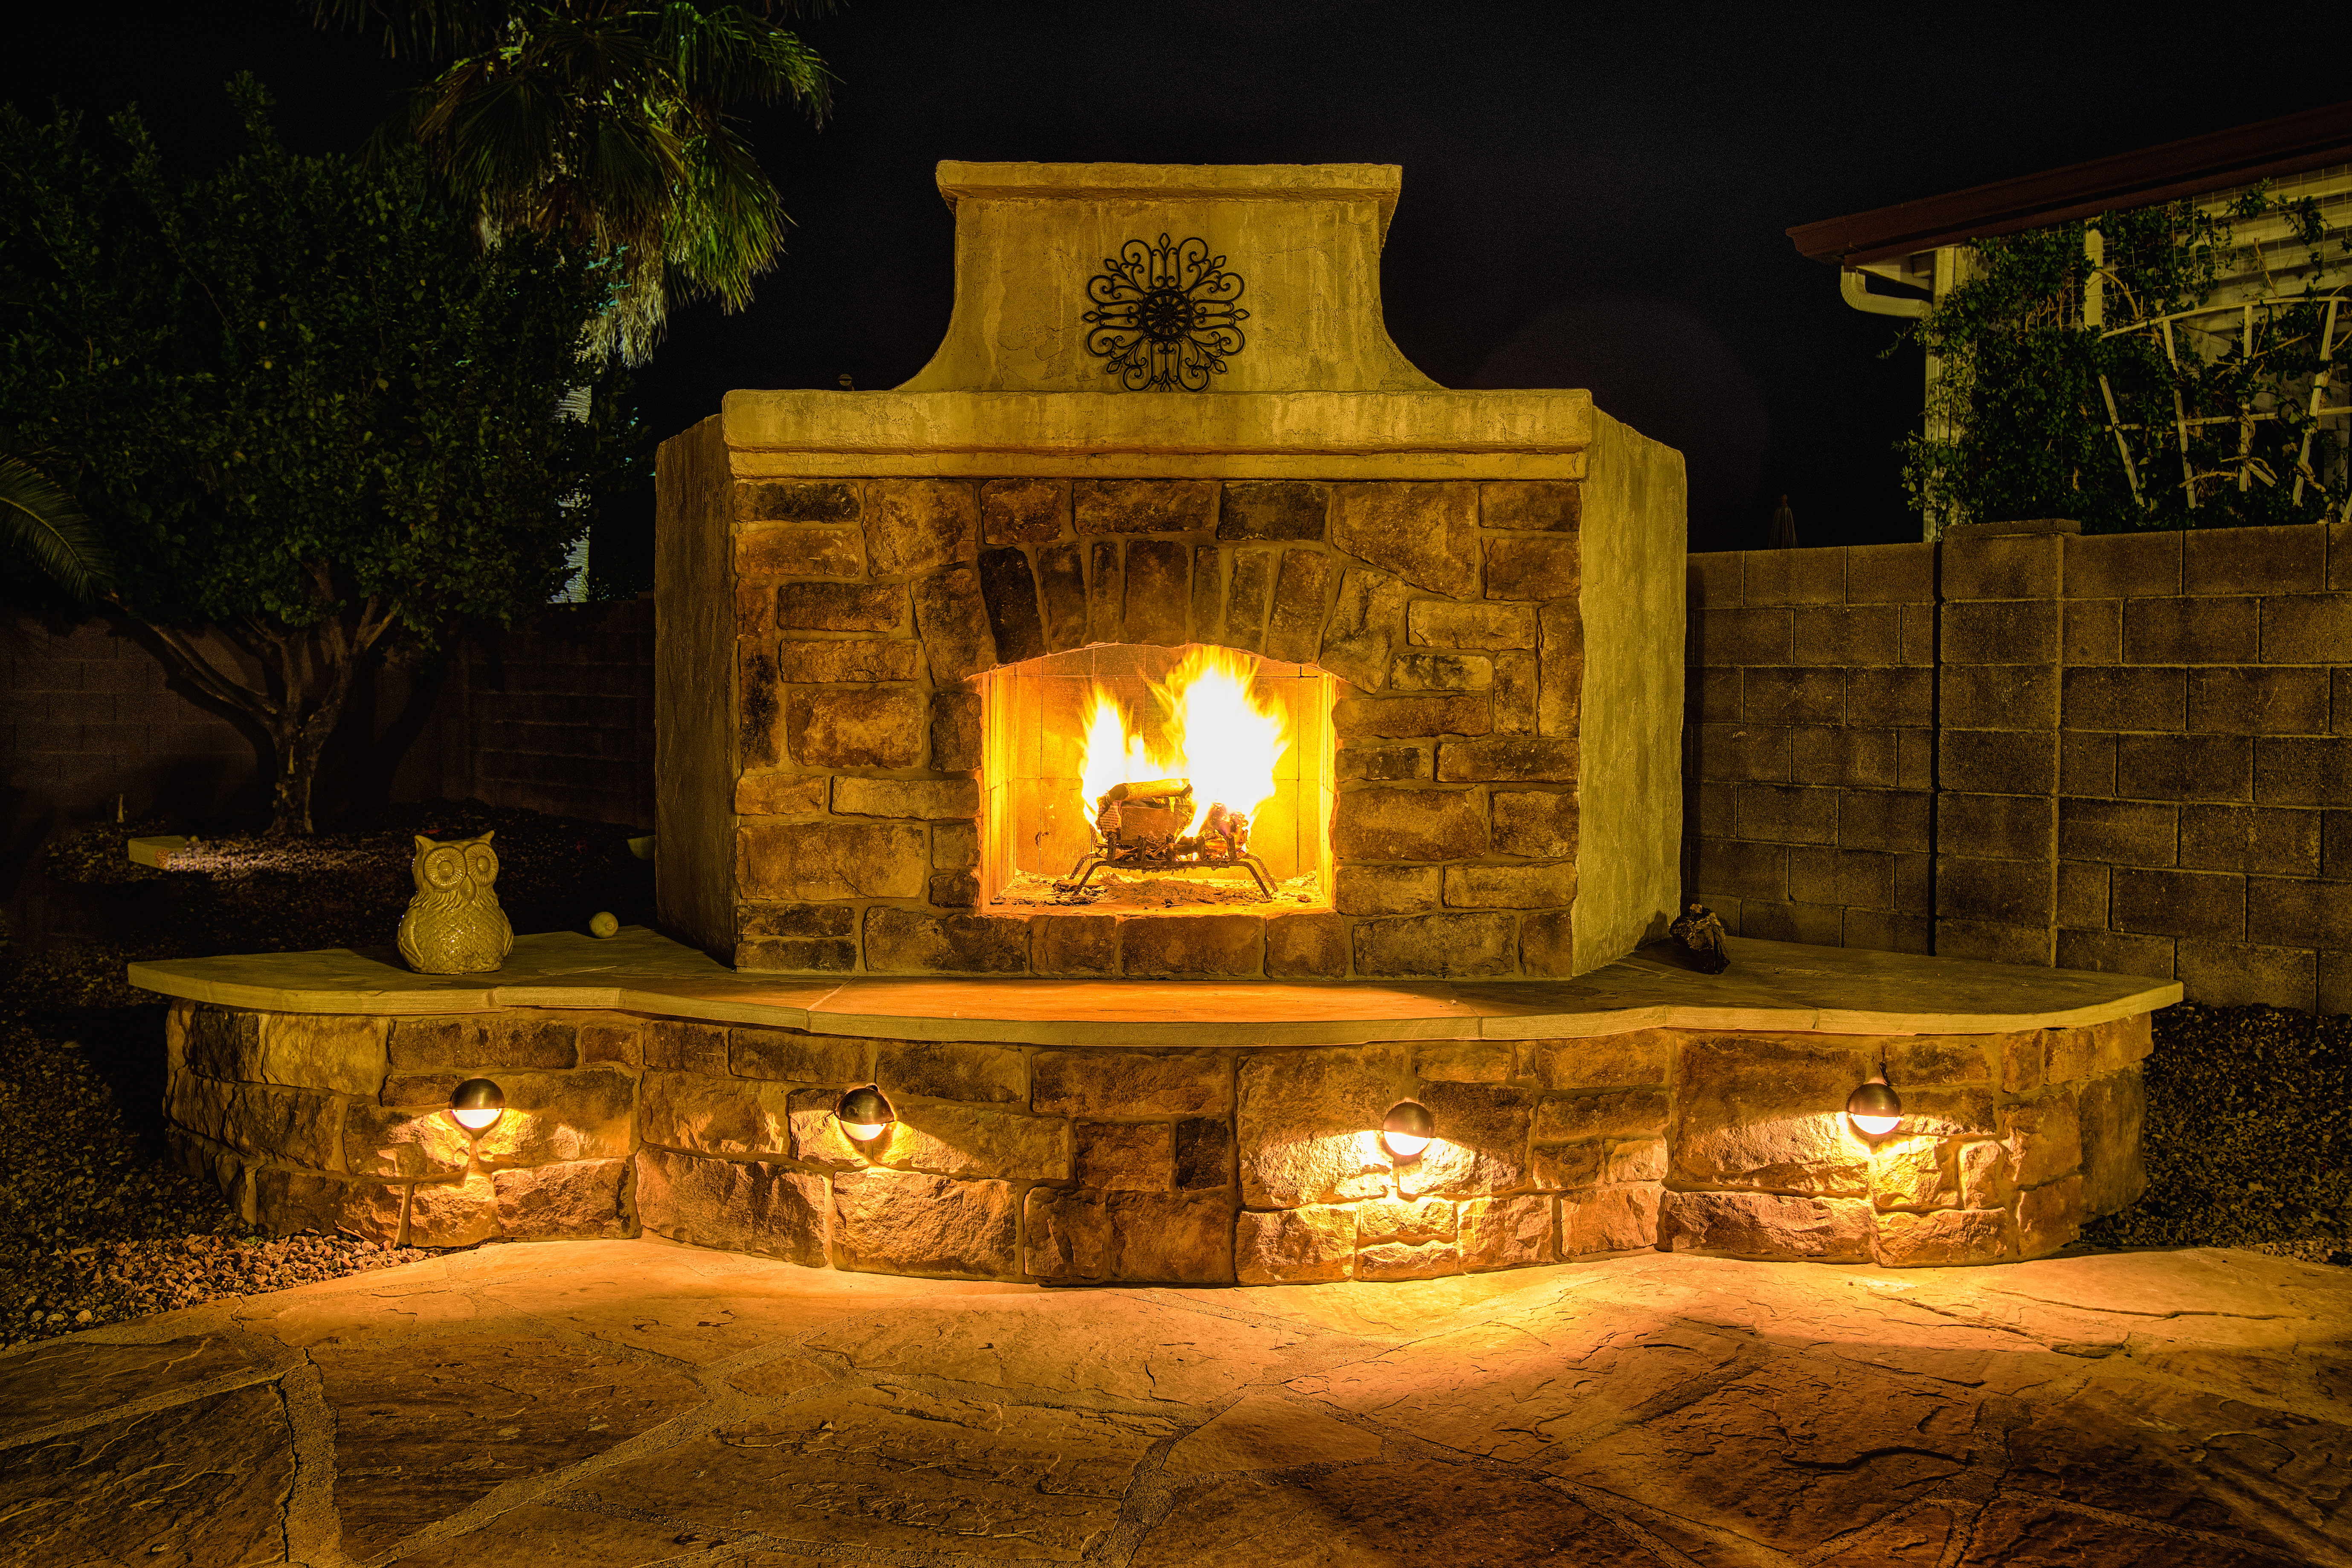 Outdoor Fireplace Design   Your DIY Outdoor Fireplace ... on Diy Outside Fireplace id=28656